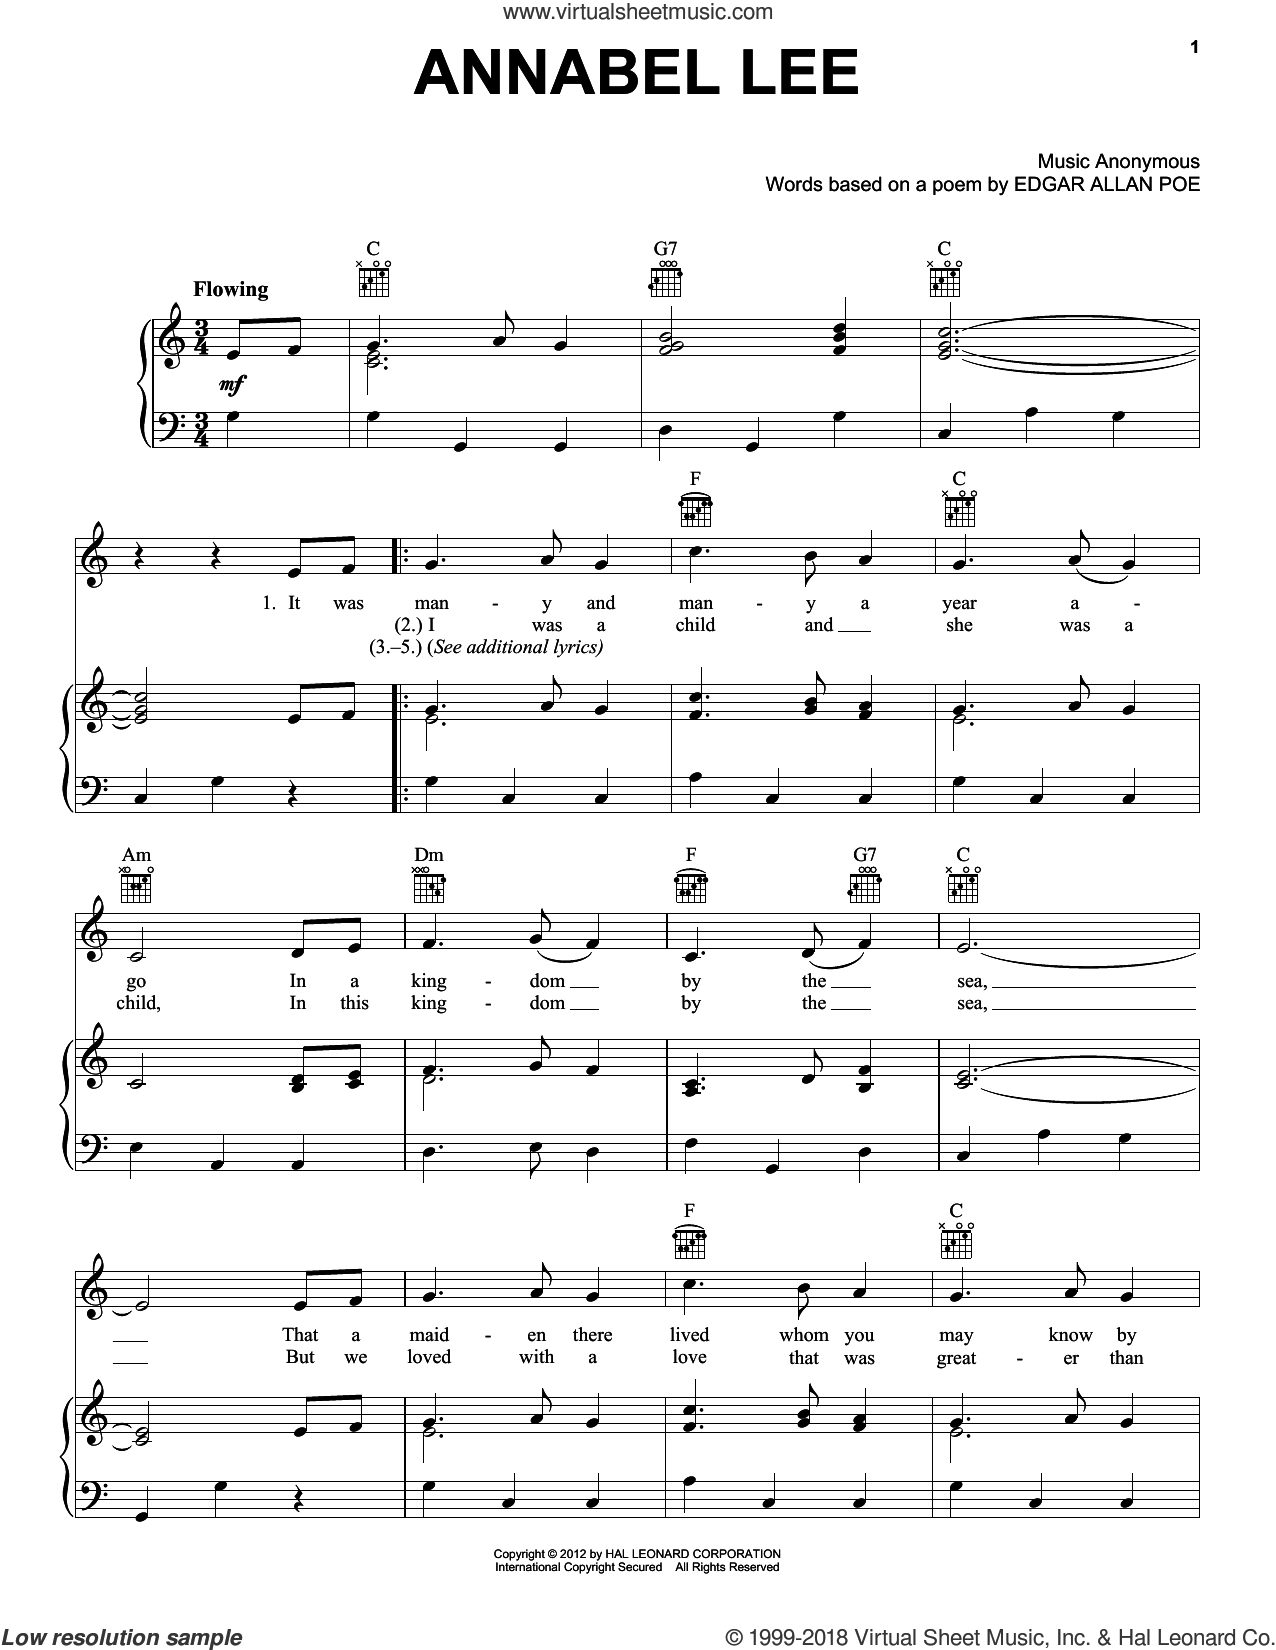 Annabel Lee sheet music for voice, piano or guitar, intermediate skill level